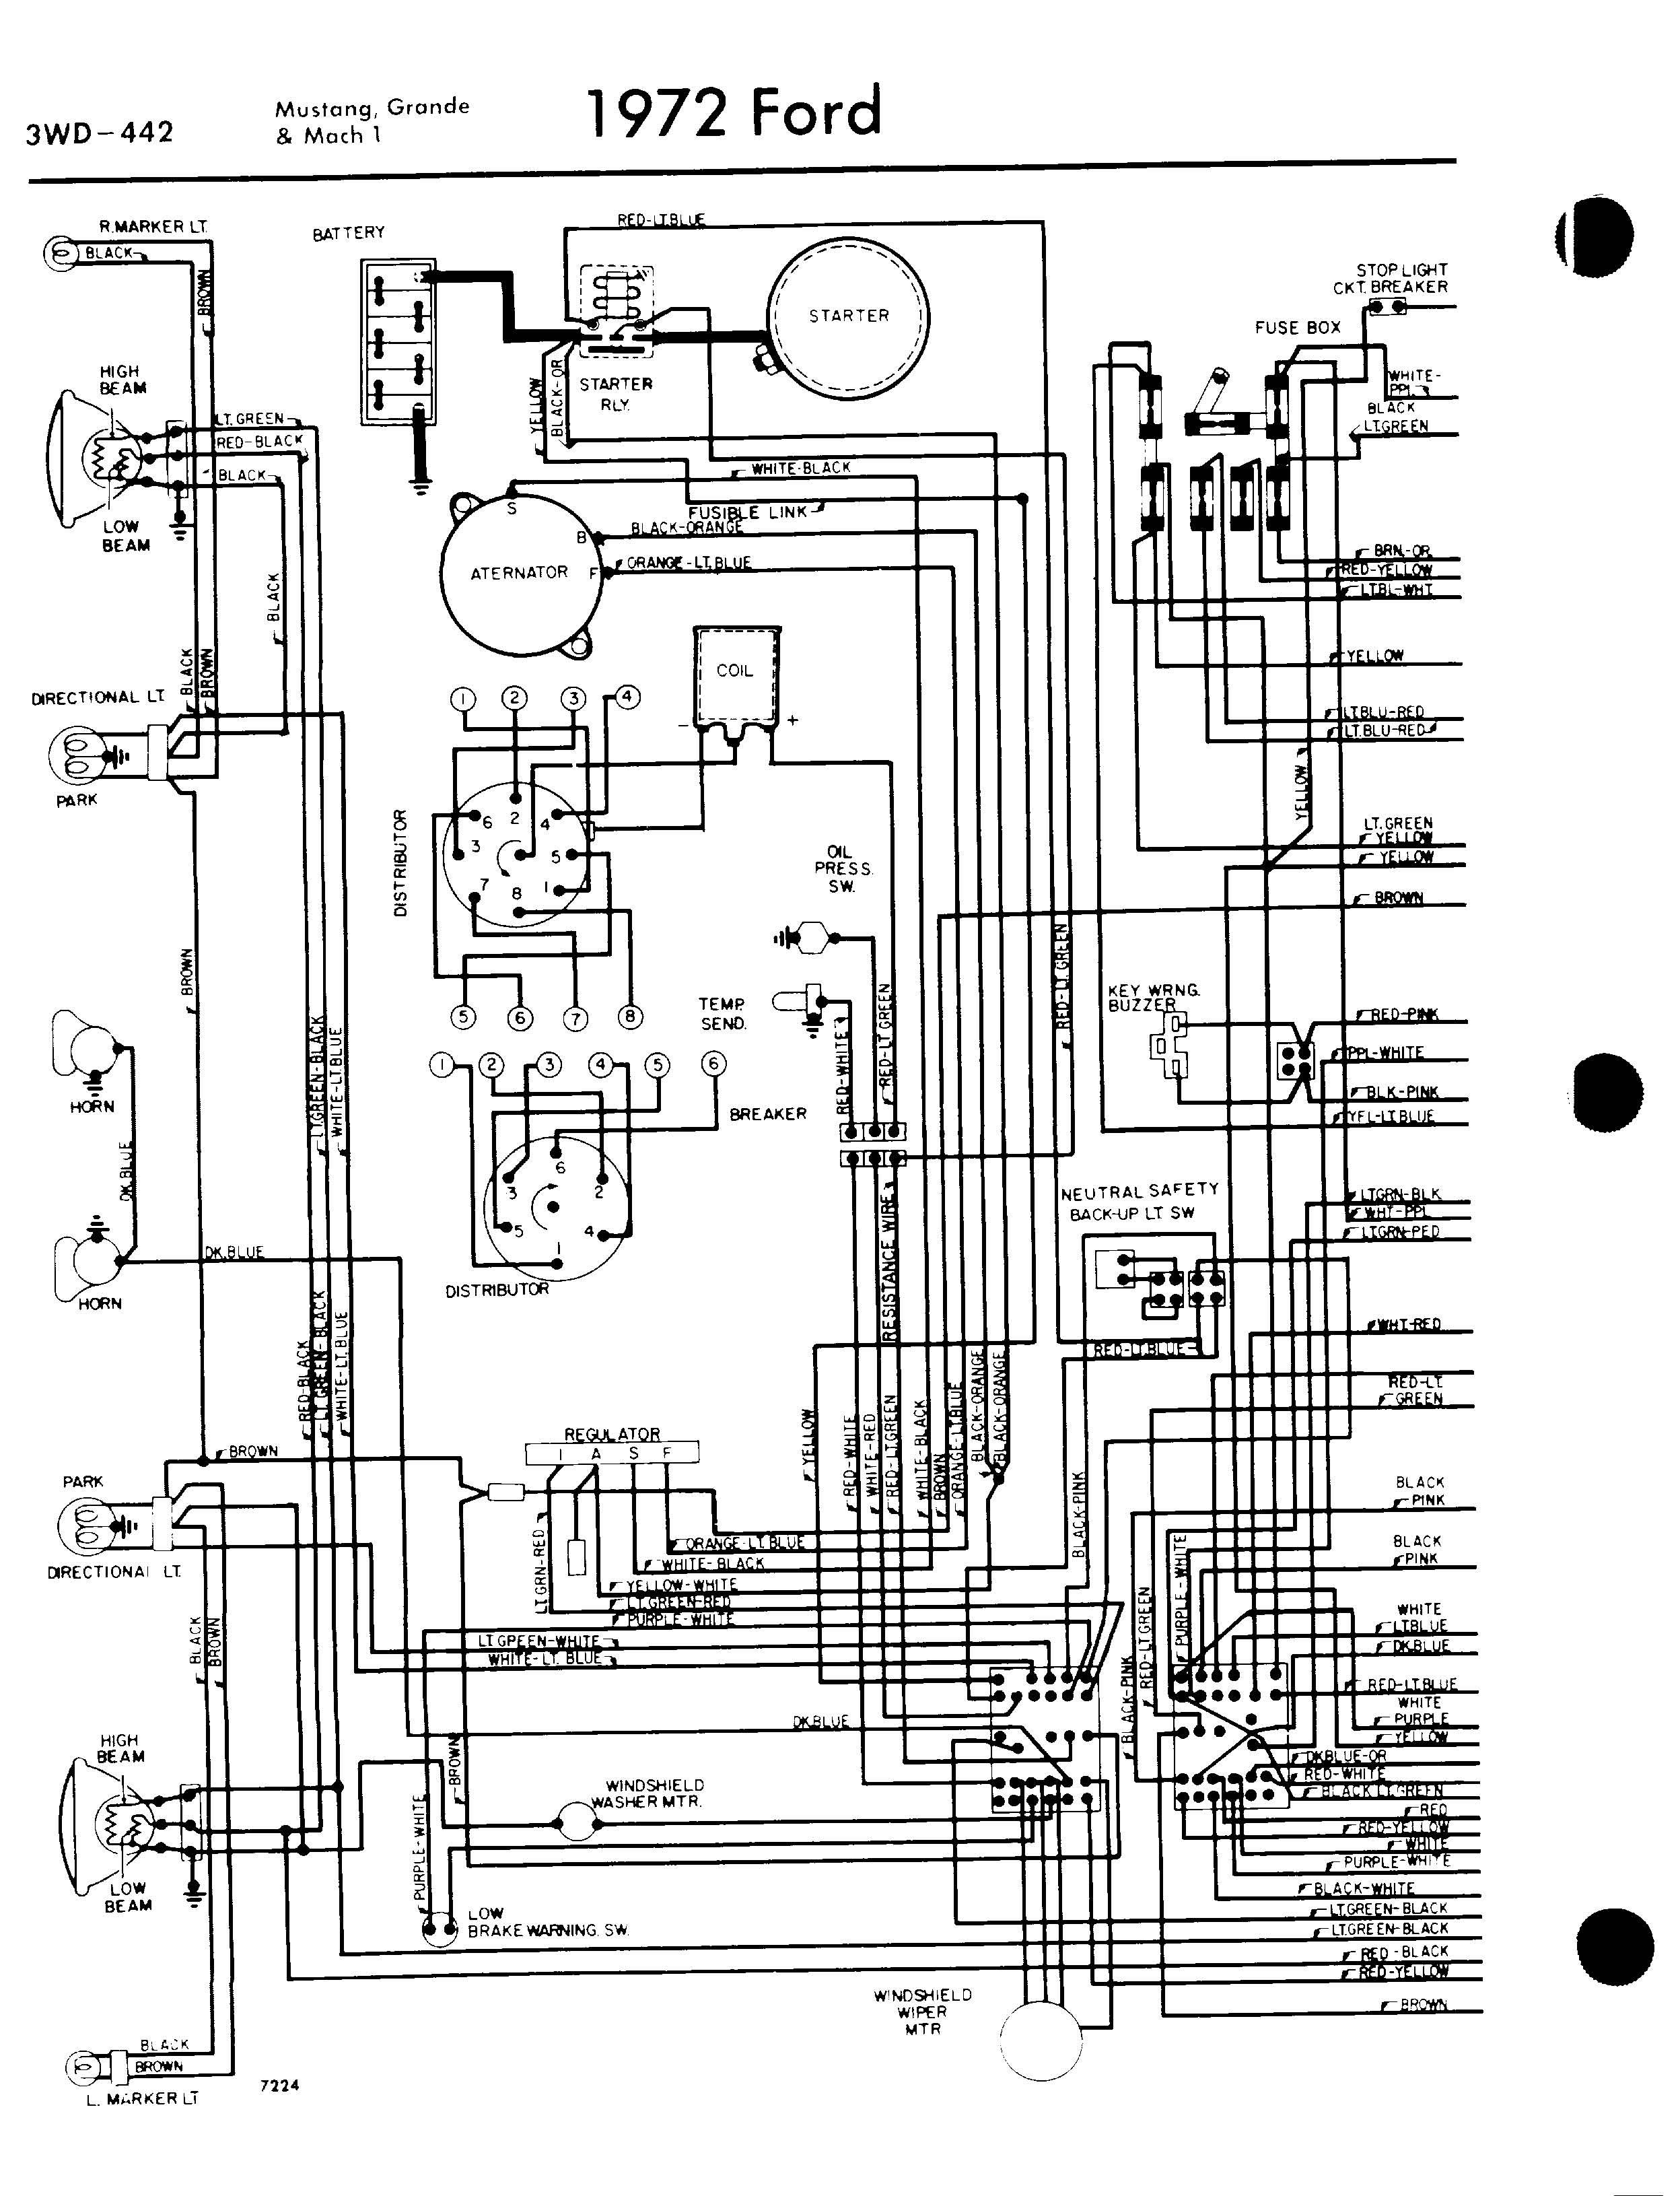 71af7a58e095e6a7716b32f1b23e8bd2 72 mach1 alternator wire harness diagram yahoo search results Ford Alternator Wiring Diagram at crackthecode.co